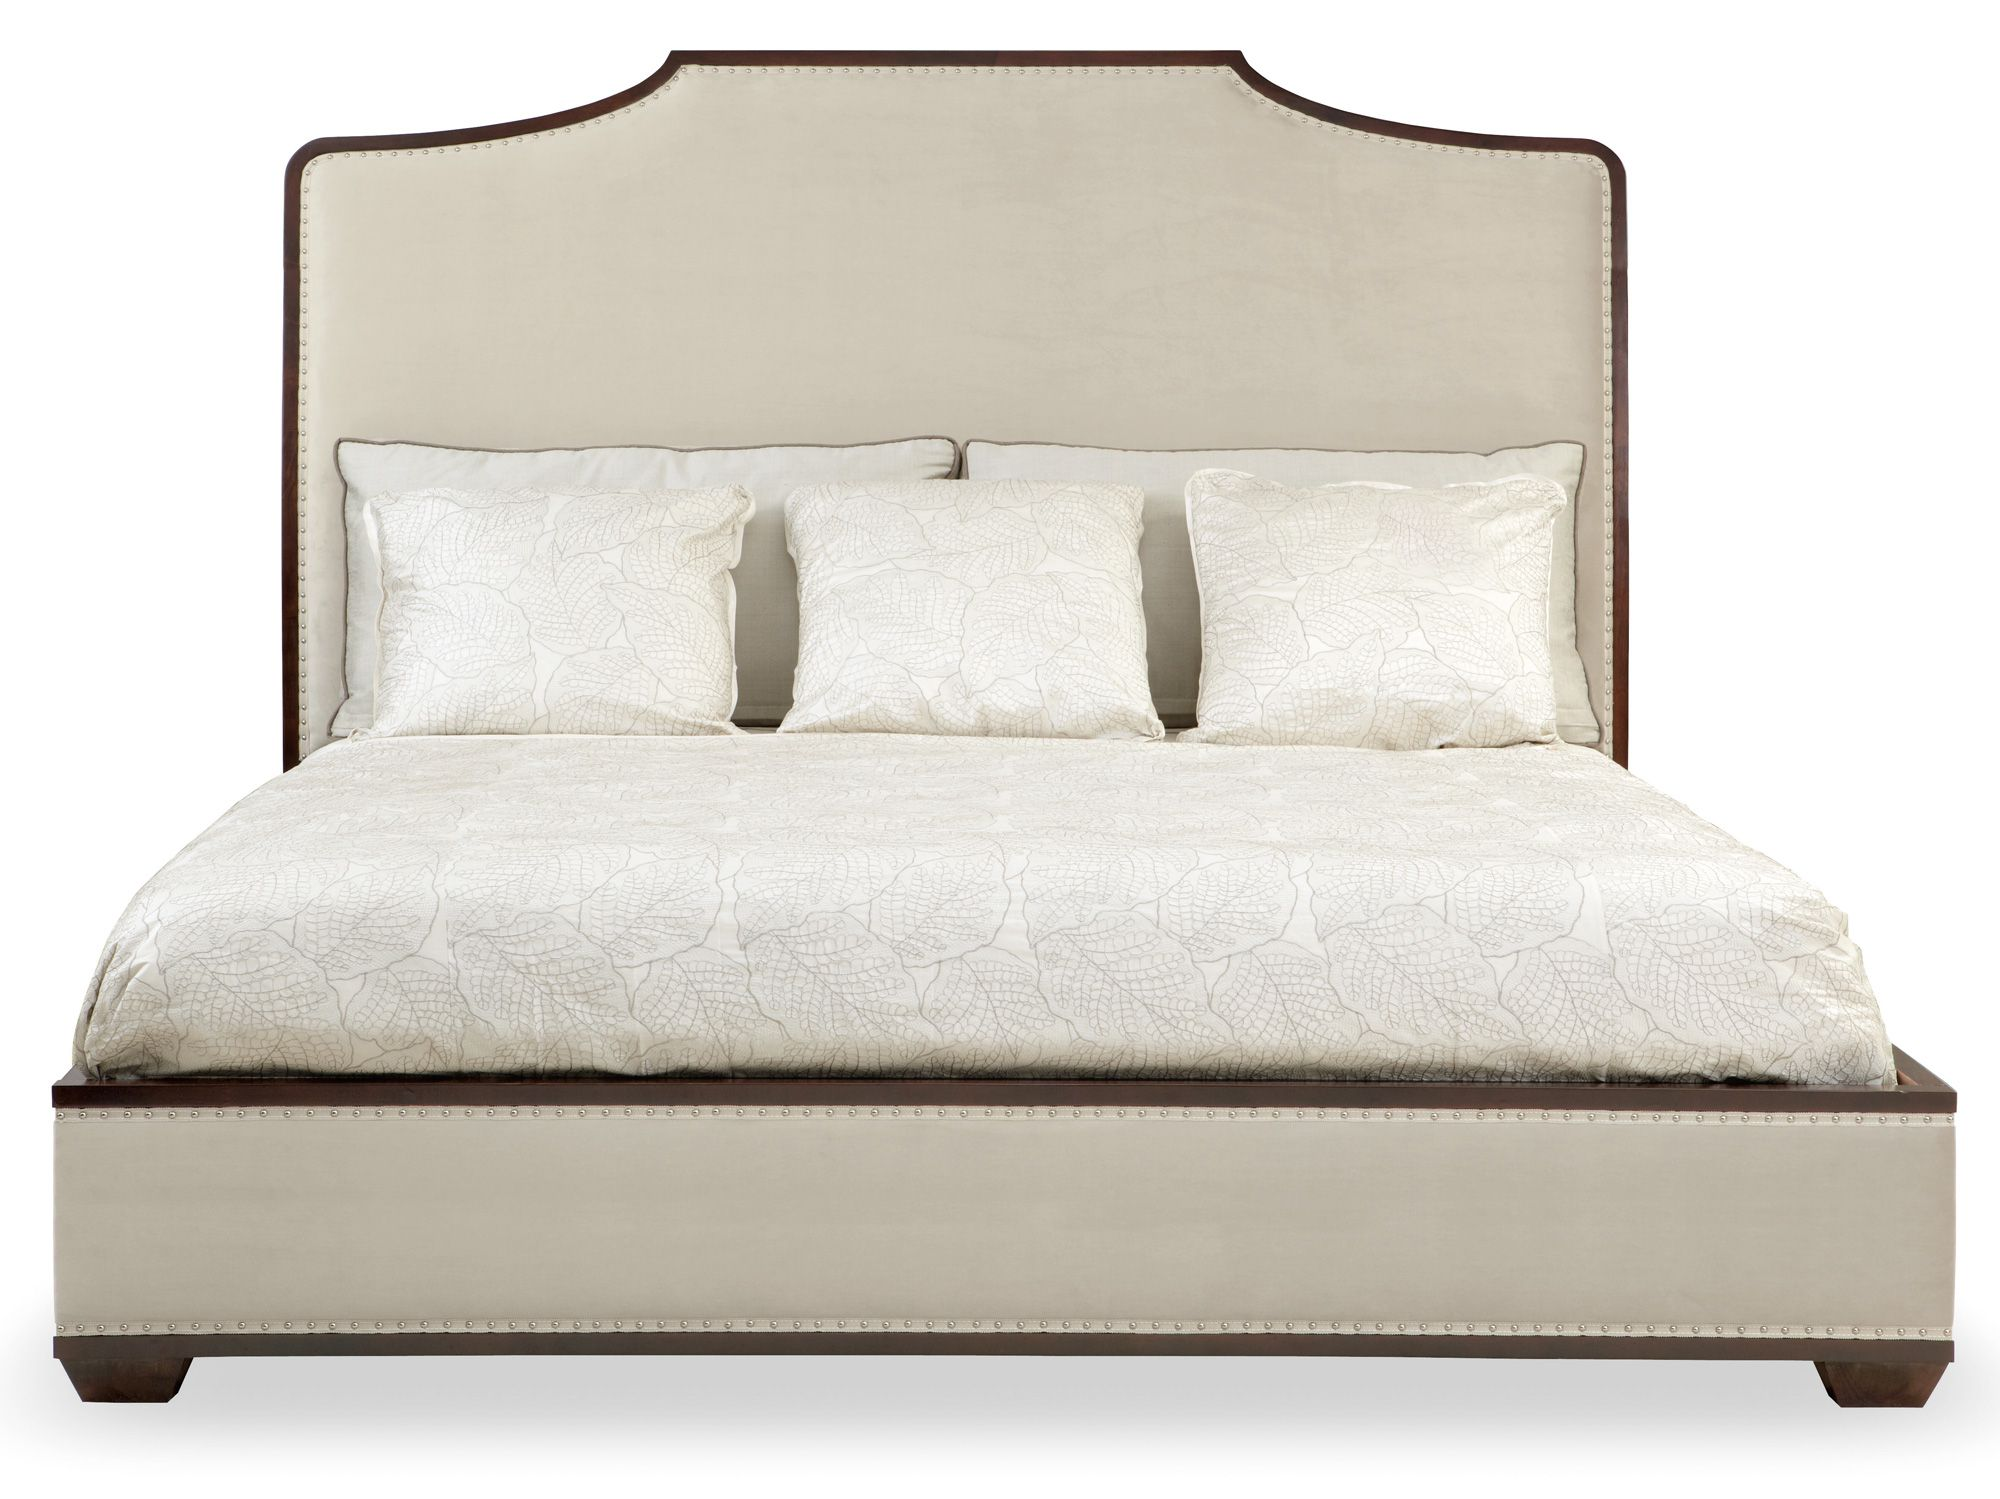 Bernhardt | Upholstered Platform Bed | Combo Of Wood And Upholstery |  Should I Price Out